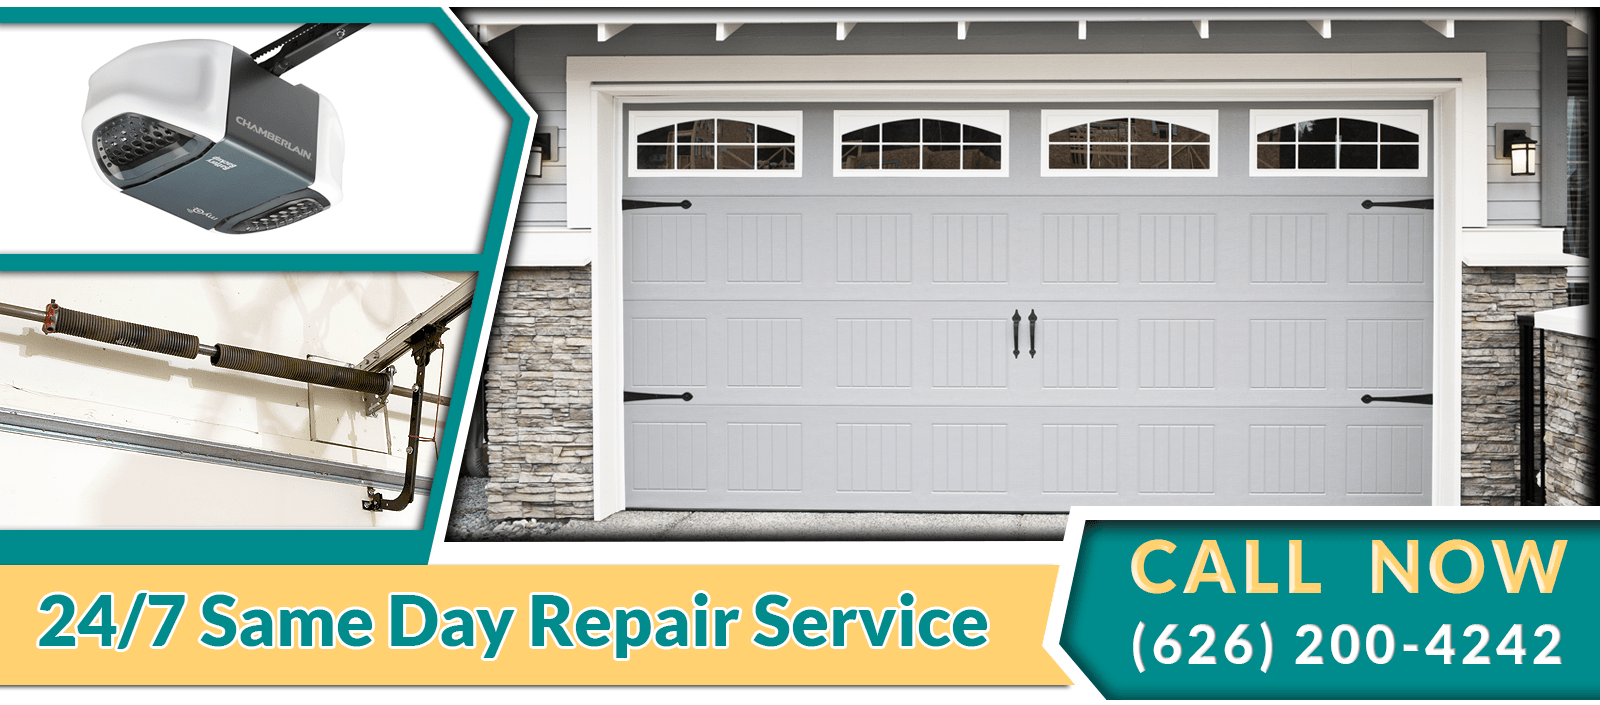 Garage Door Repair Pasadena Ca Same Day Service 626 200 4242